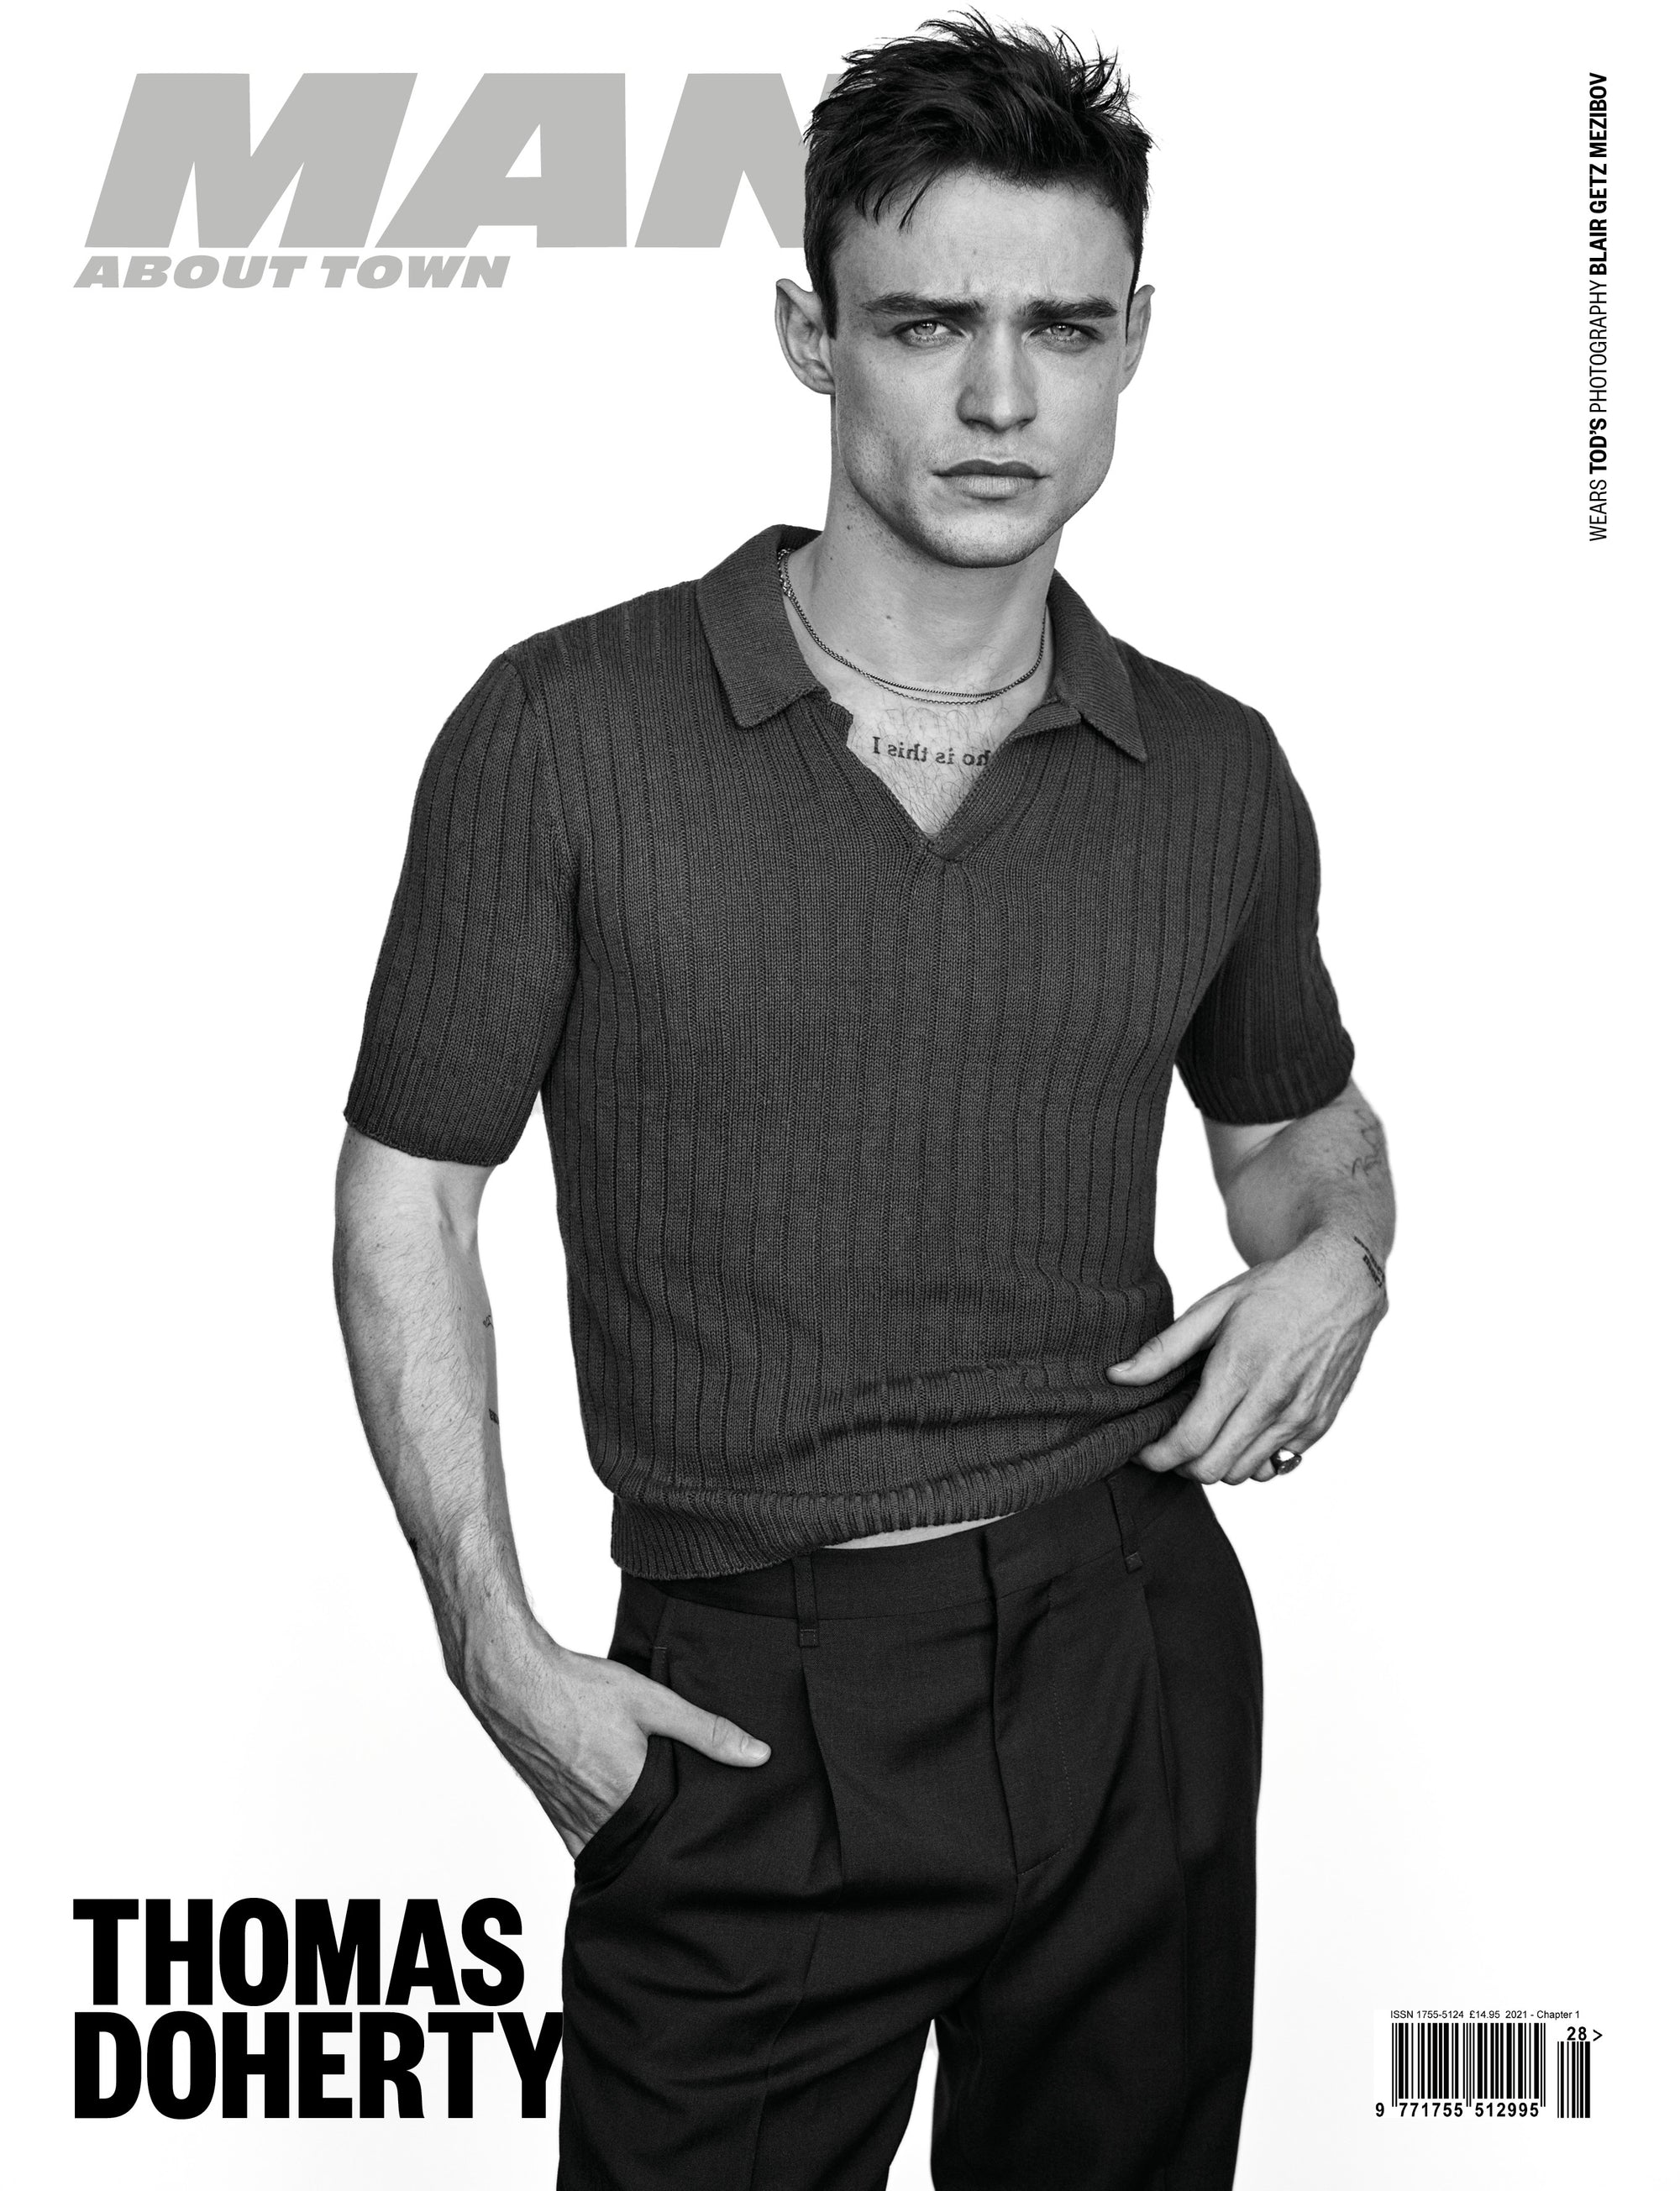 Thomas Doherty covers Man About Town 2021, Chapter 1